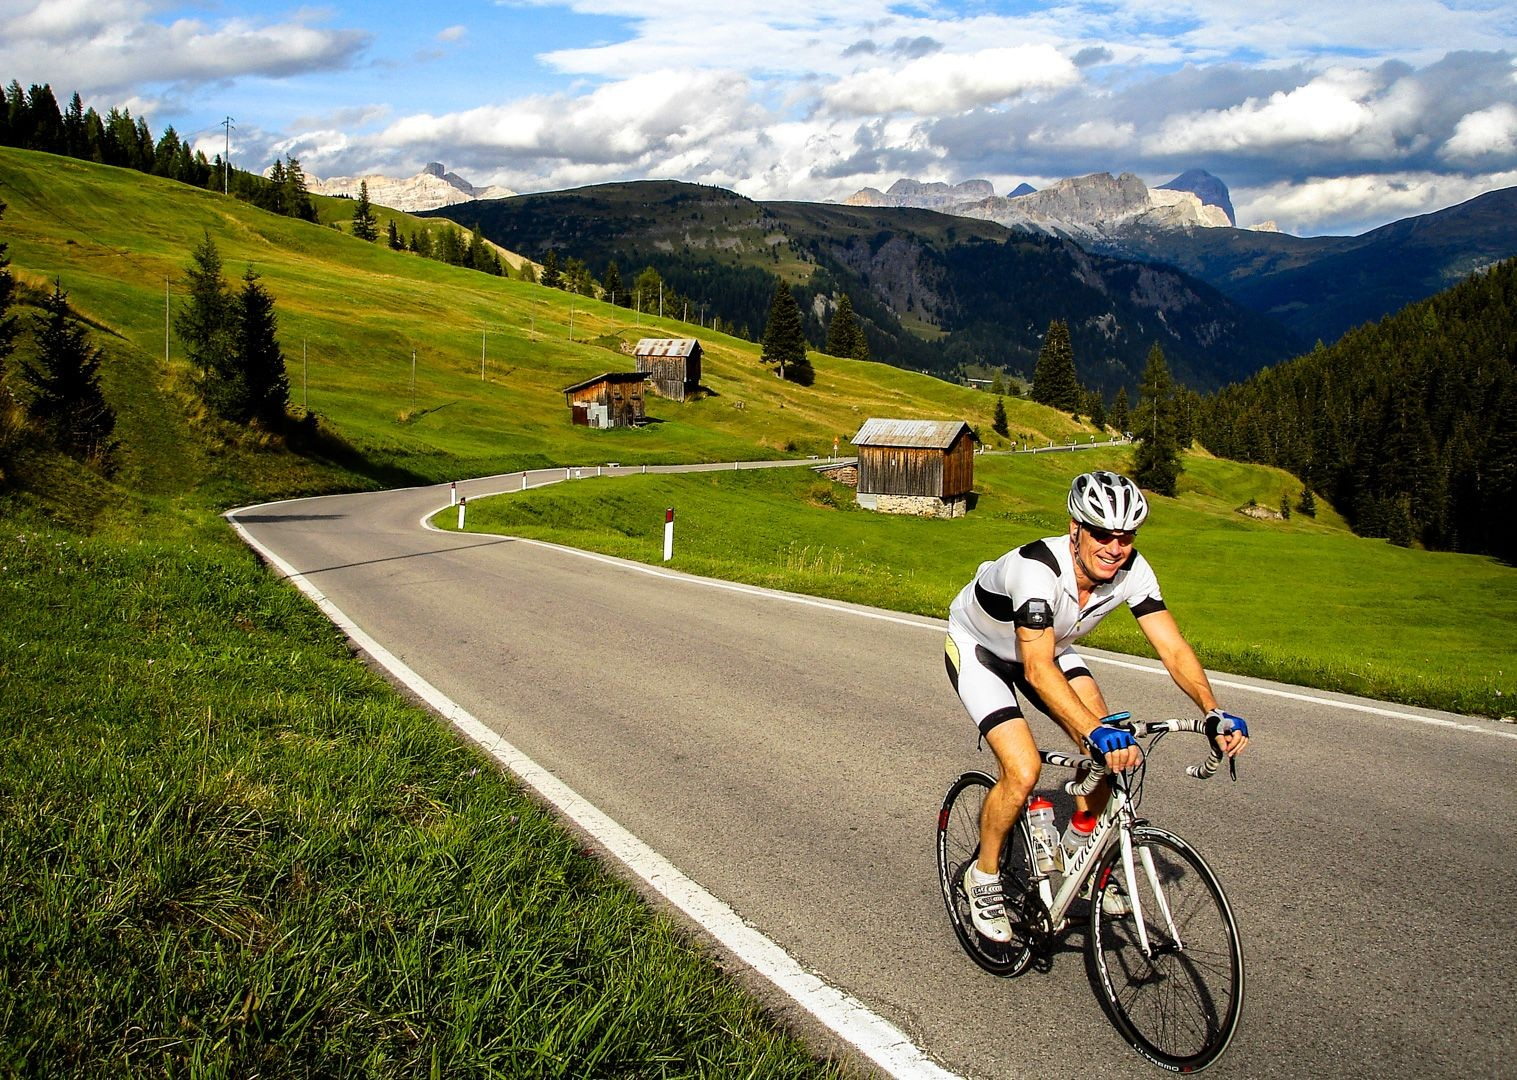 incredible-road-cycling-with-saddle-skedaddle-in-italy.jpg - Italy - Italian Dolomites - Guided Road Cycling Holiday - Italia Road Cycling